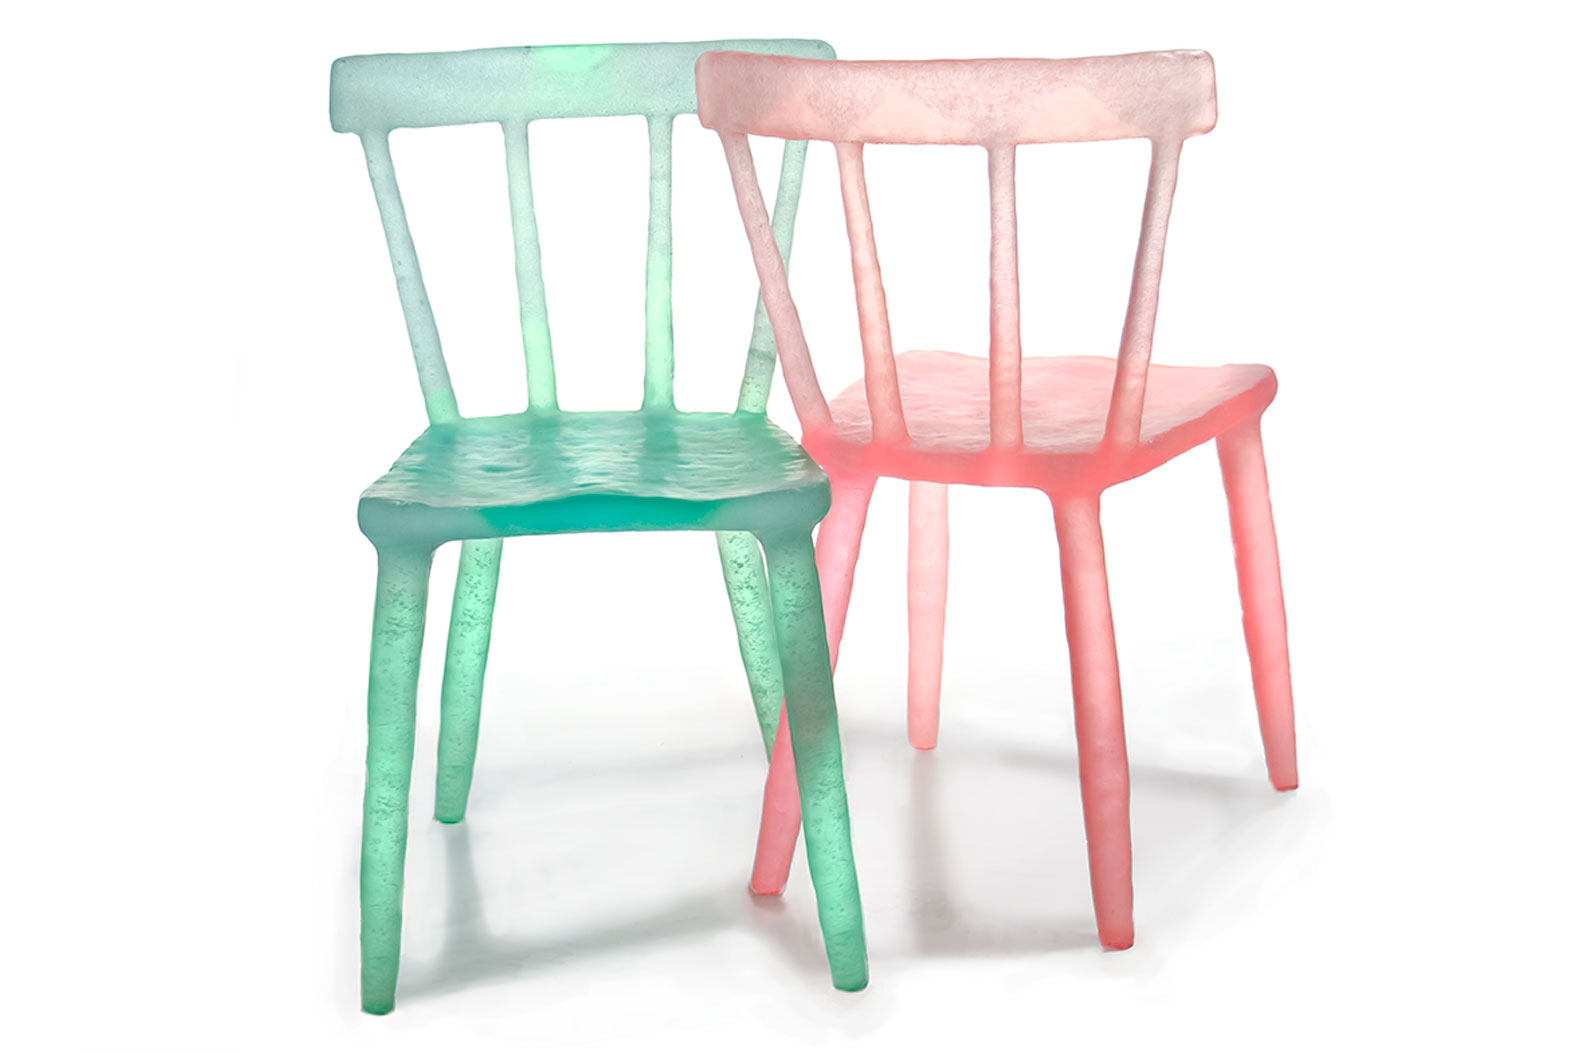 Kim Markel 39 S Candy Colored Recycled Chairs Inject A Juicy